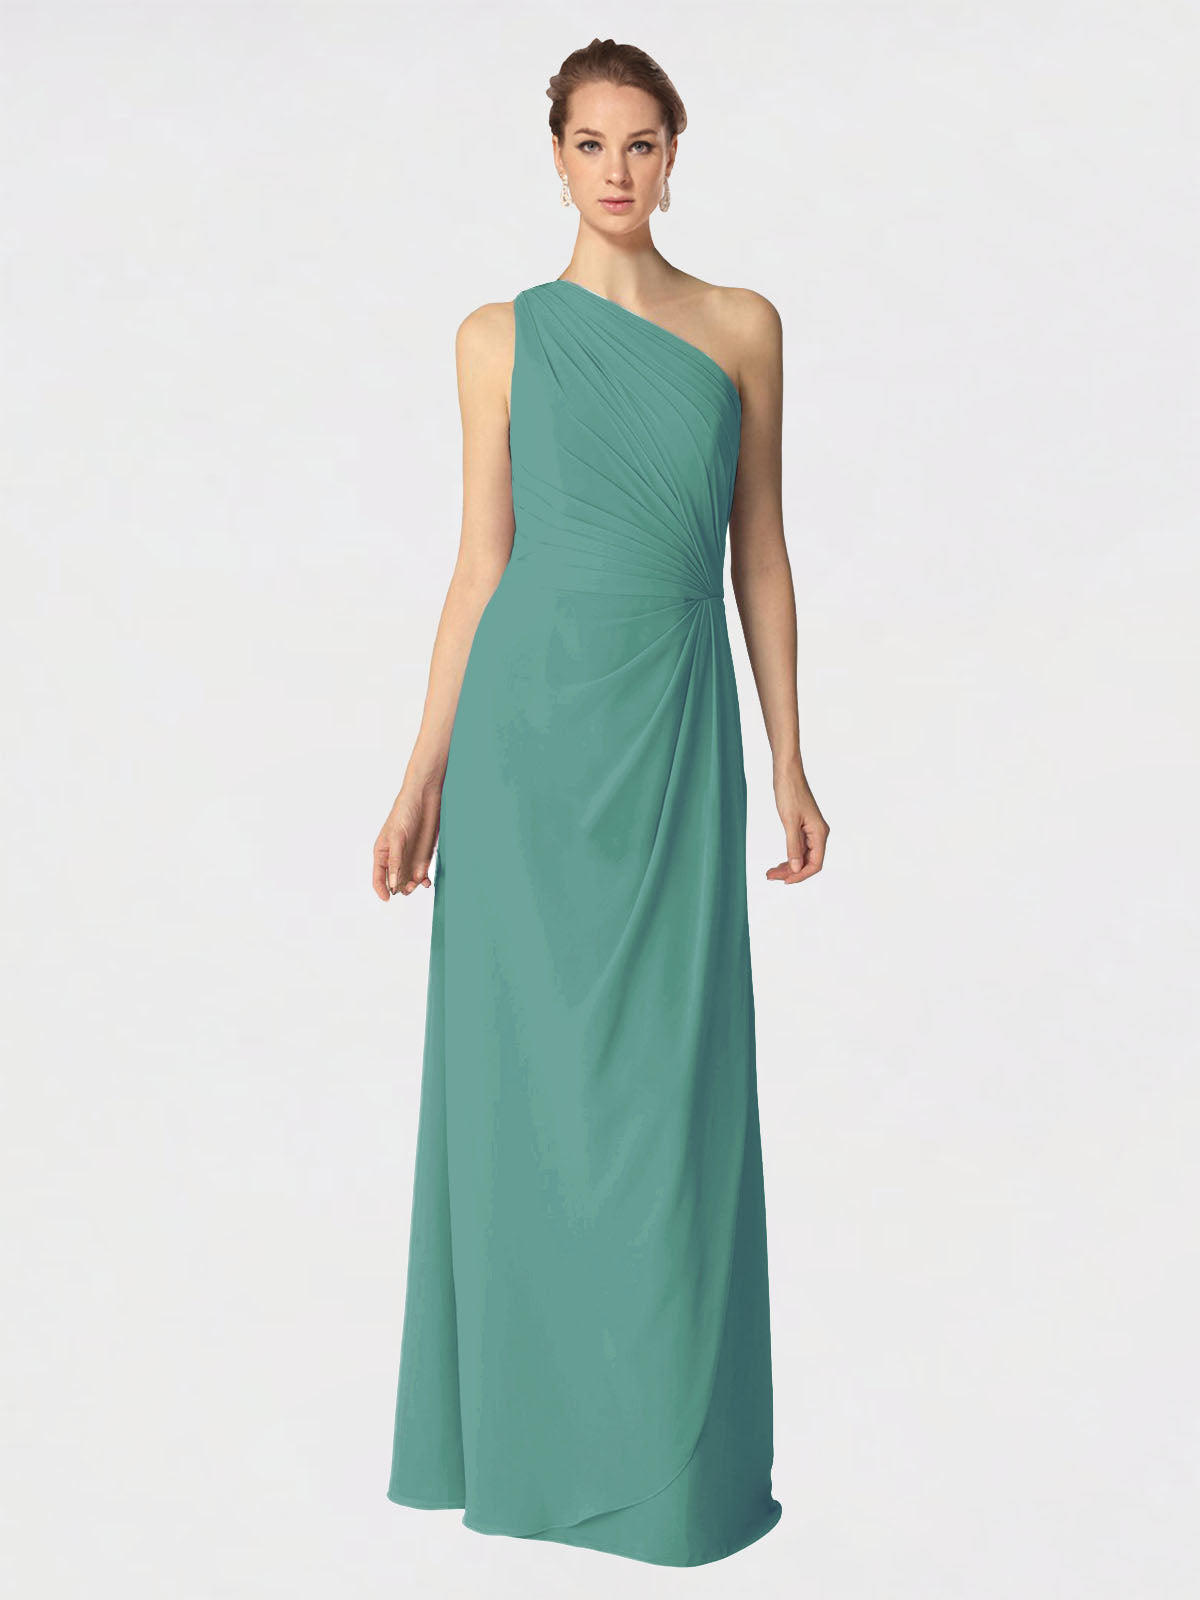 Long A-Line One Shoulder Sleeveless Icelandic Silver Chiffon Bridesmaid Dress Aurora